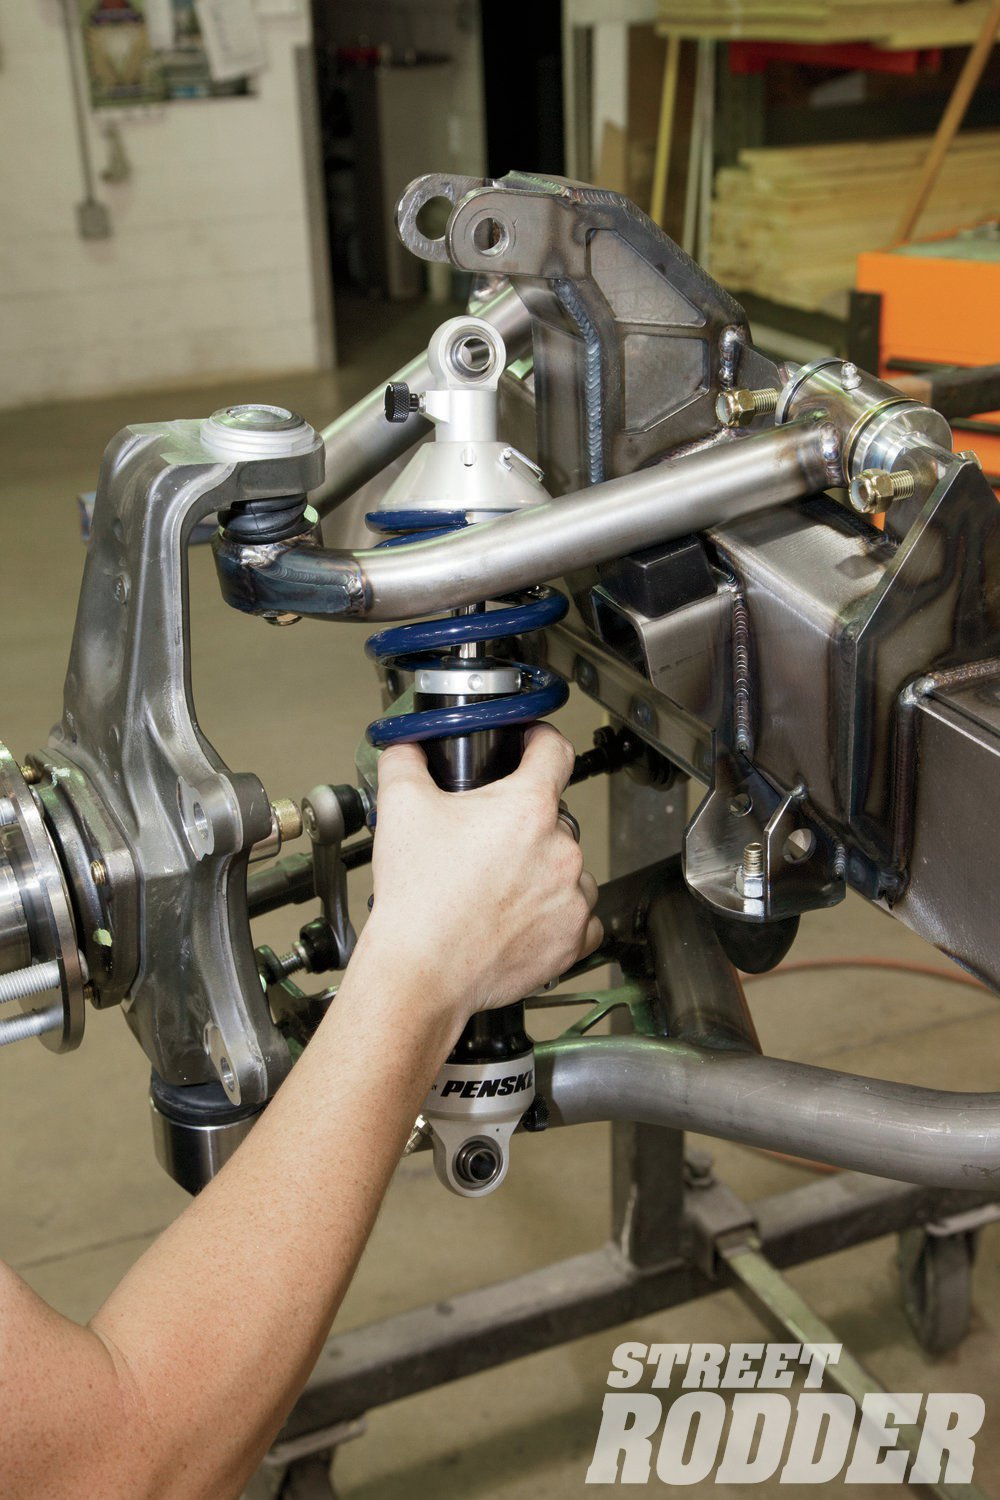 10. Penske is one of the biggest names in racing as well as the production of the high-performance shocks—which are used on all RS Fast Track suspension systems. Note that spherical bearings are used in the mounts rather than urethane bushings.